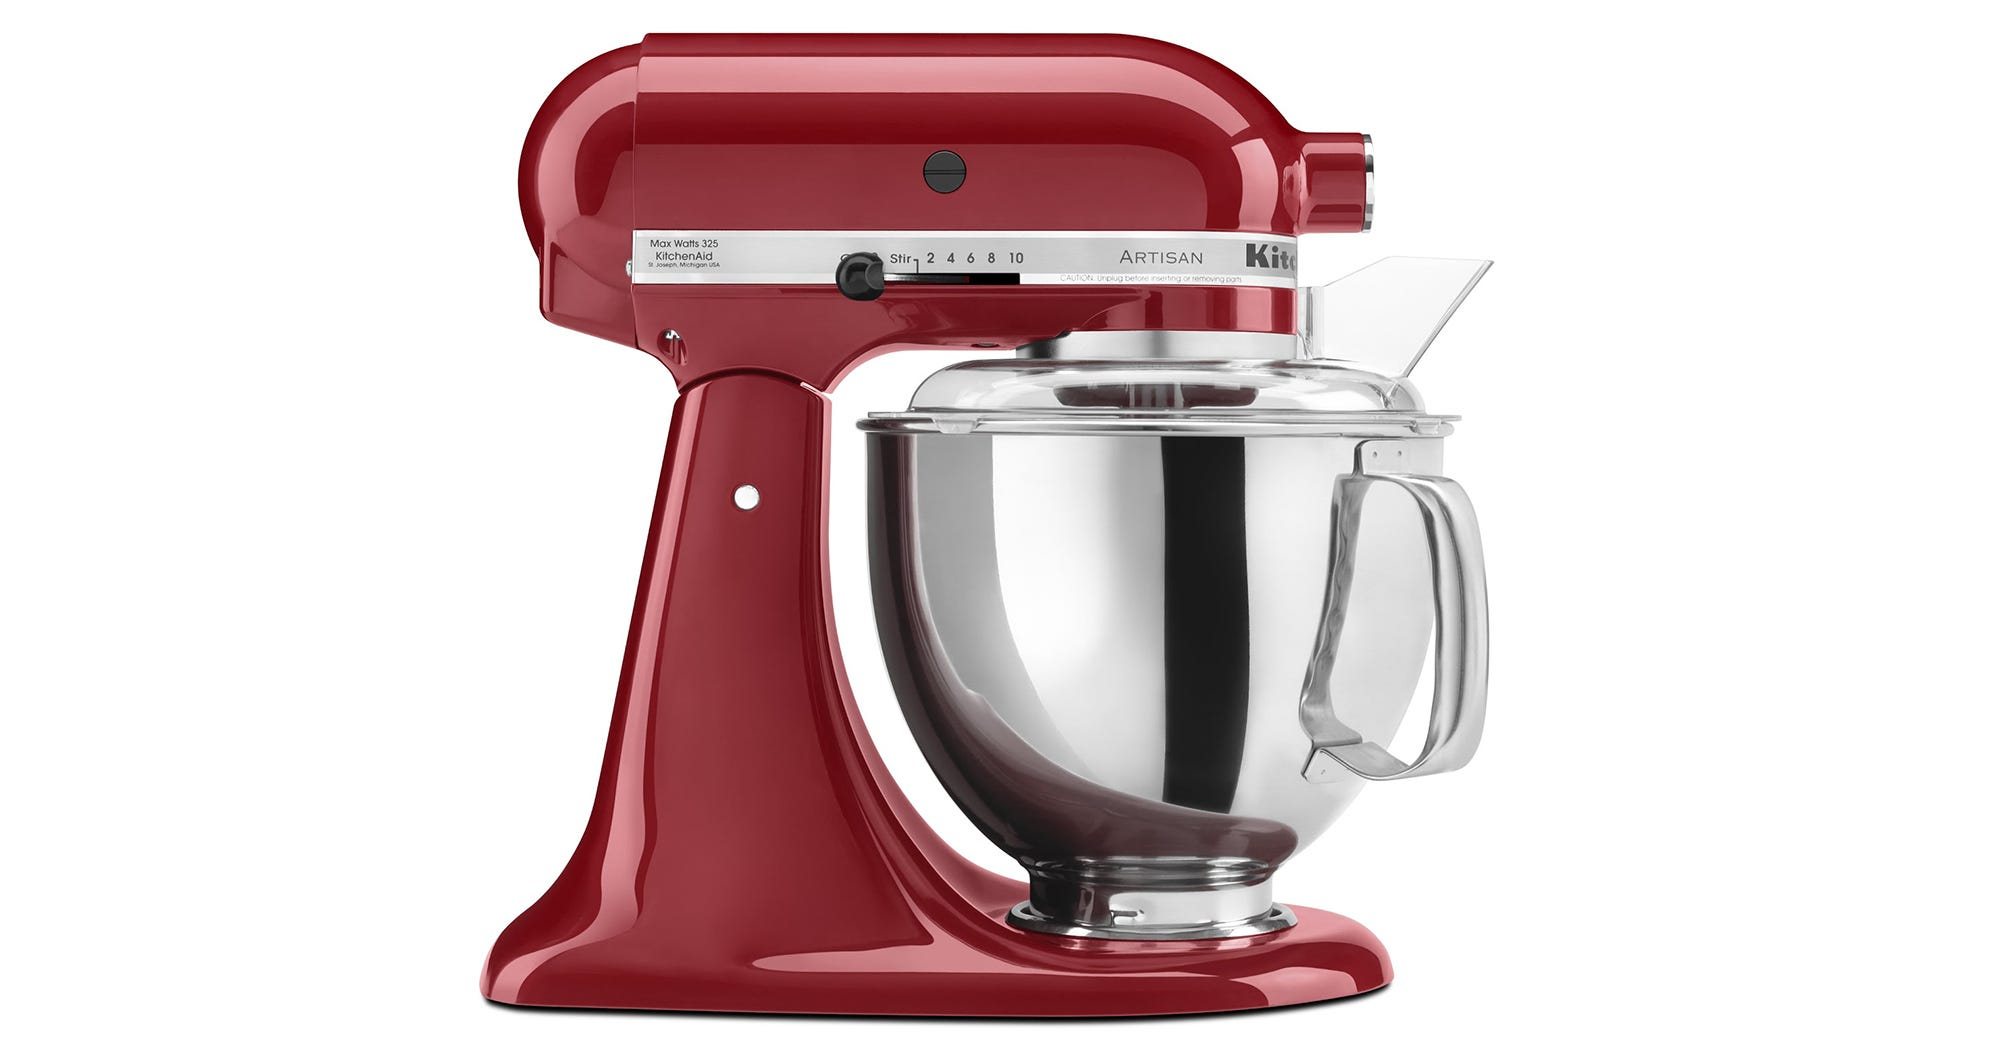 Kitchenaid Colors 2016 Kitchenaid Stand Mixer New Colors March 2017